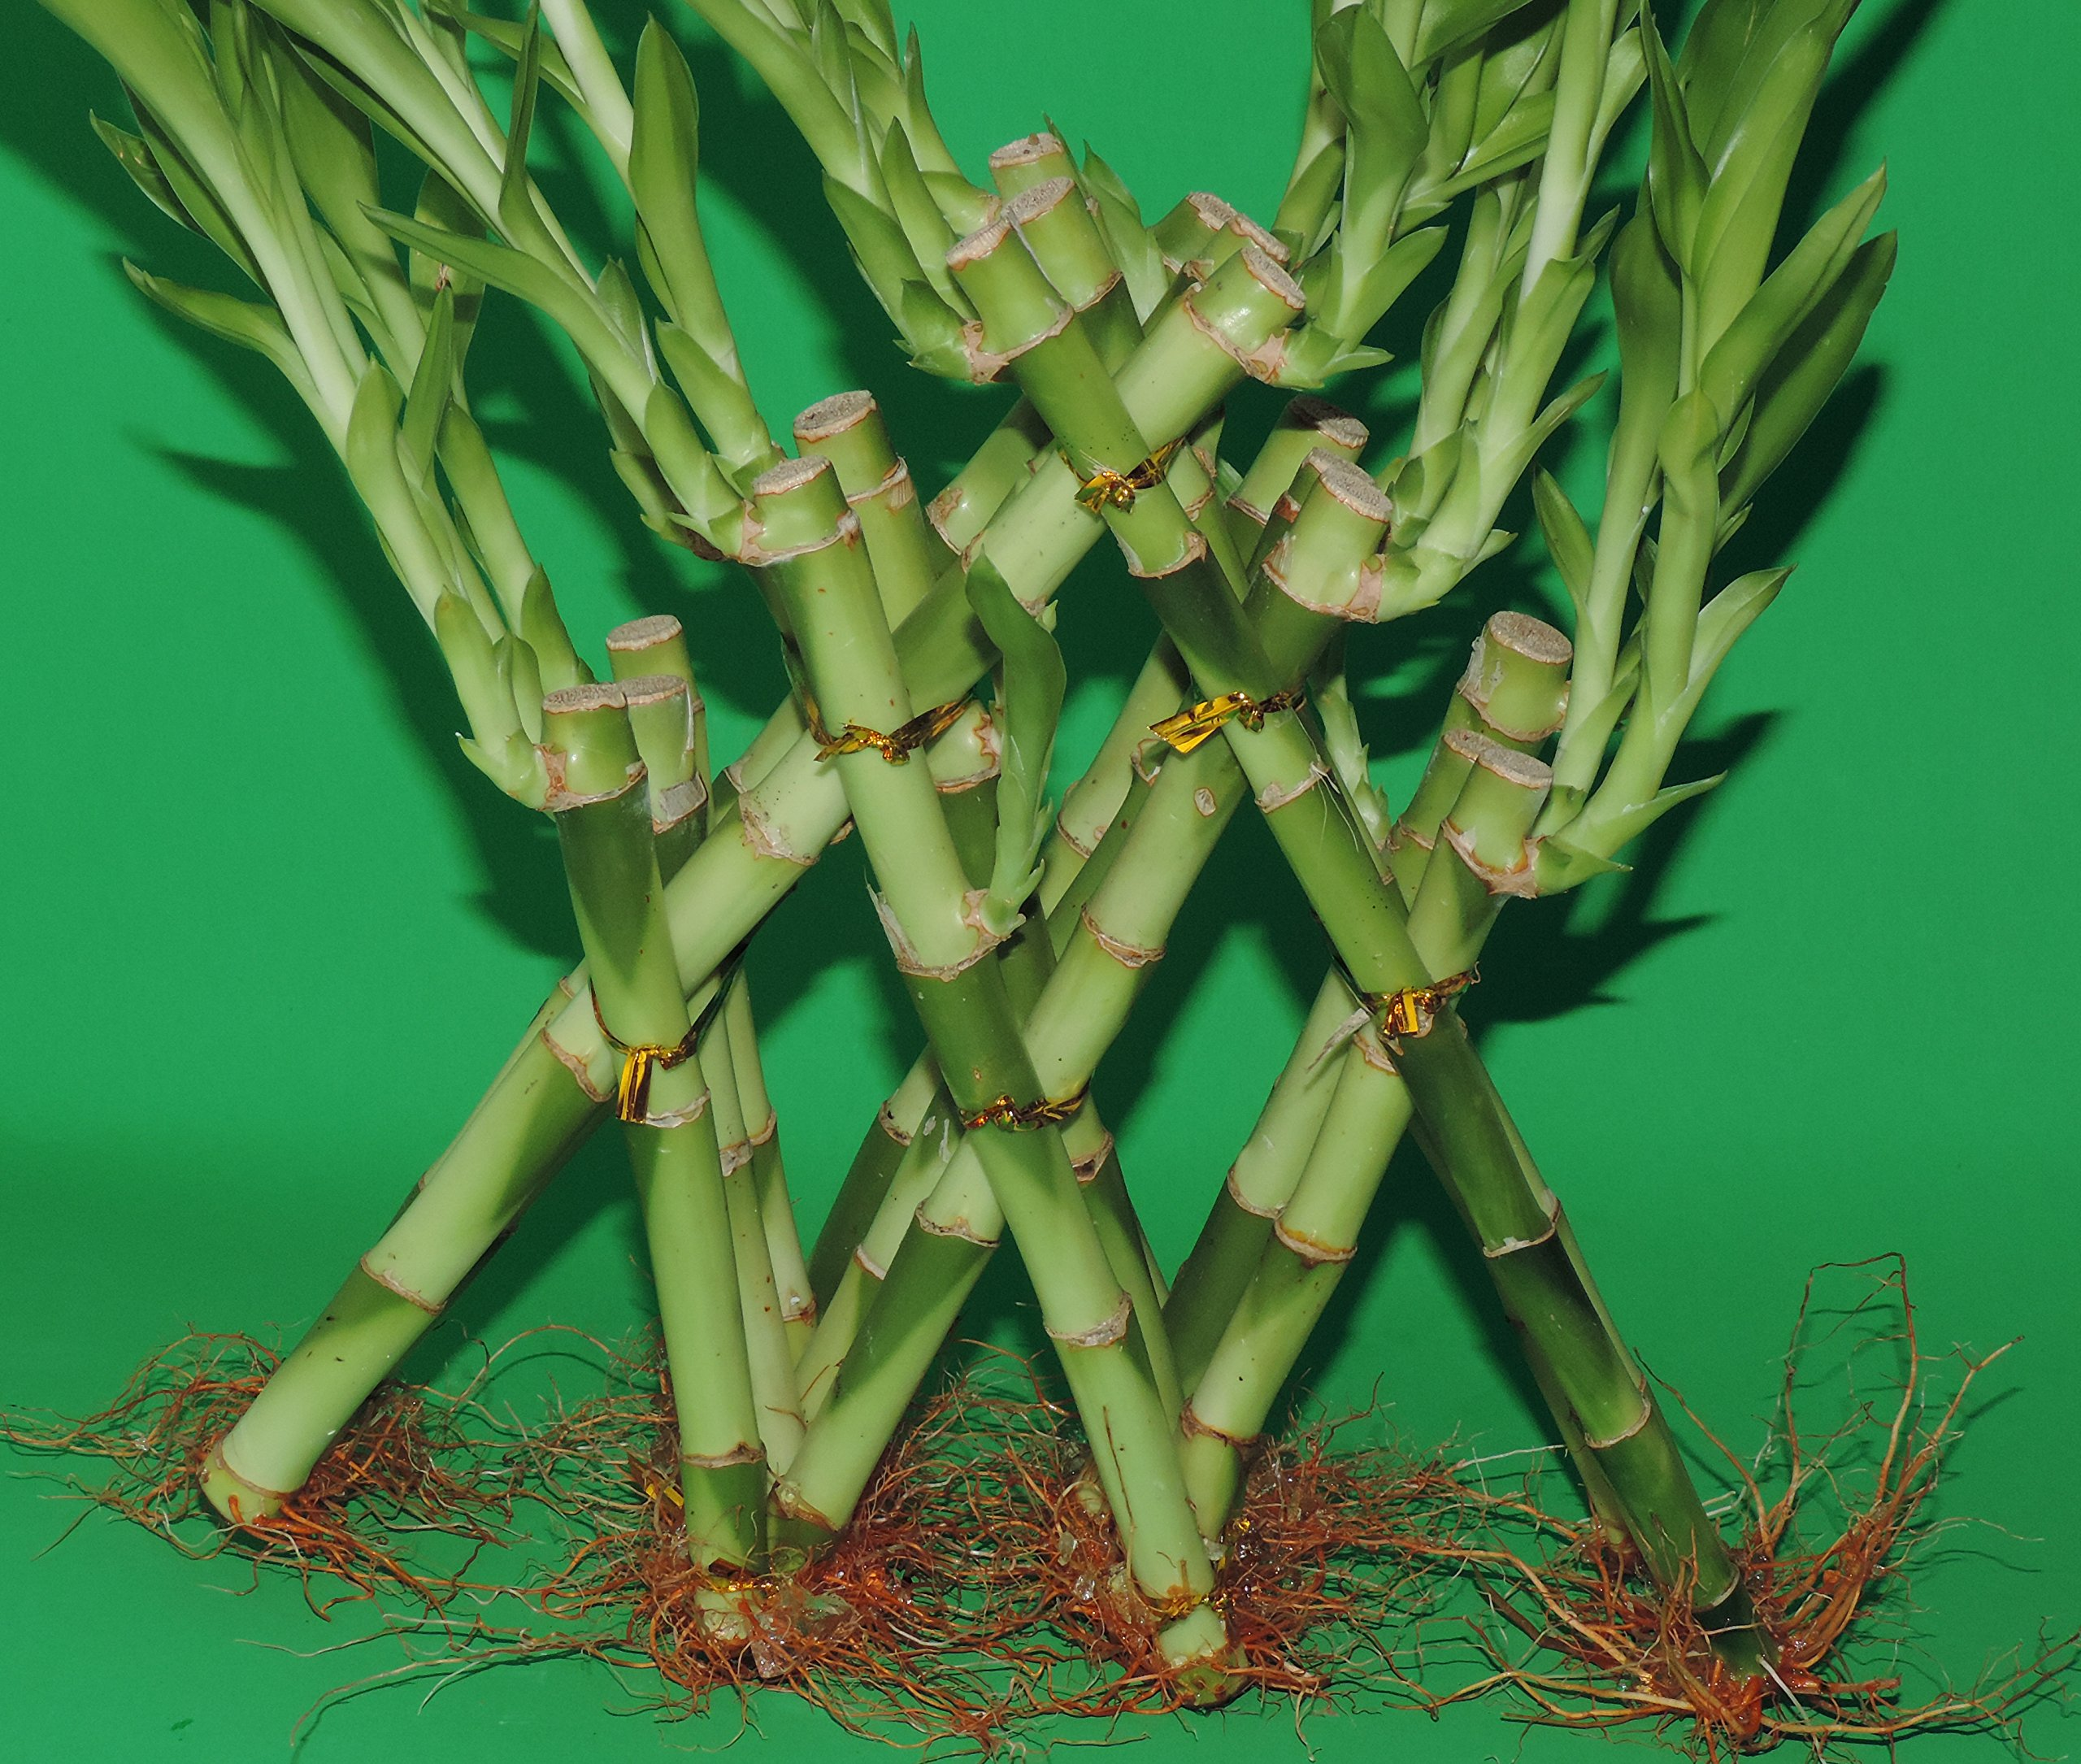 Lucky Bamboo-3 Tier Pyramid 6'' 8'' 10'' TOP Total About 18 Stalks 12 Inches Tall From Jmbamboo